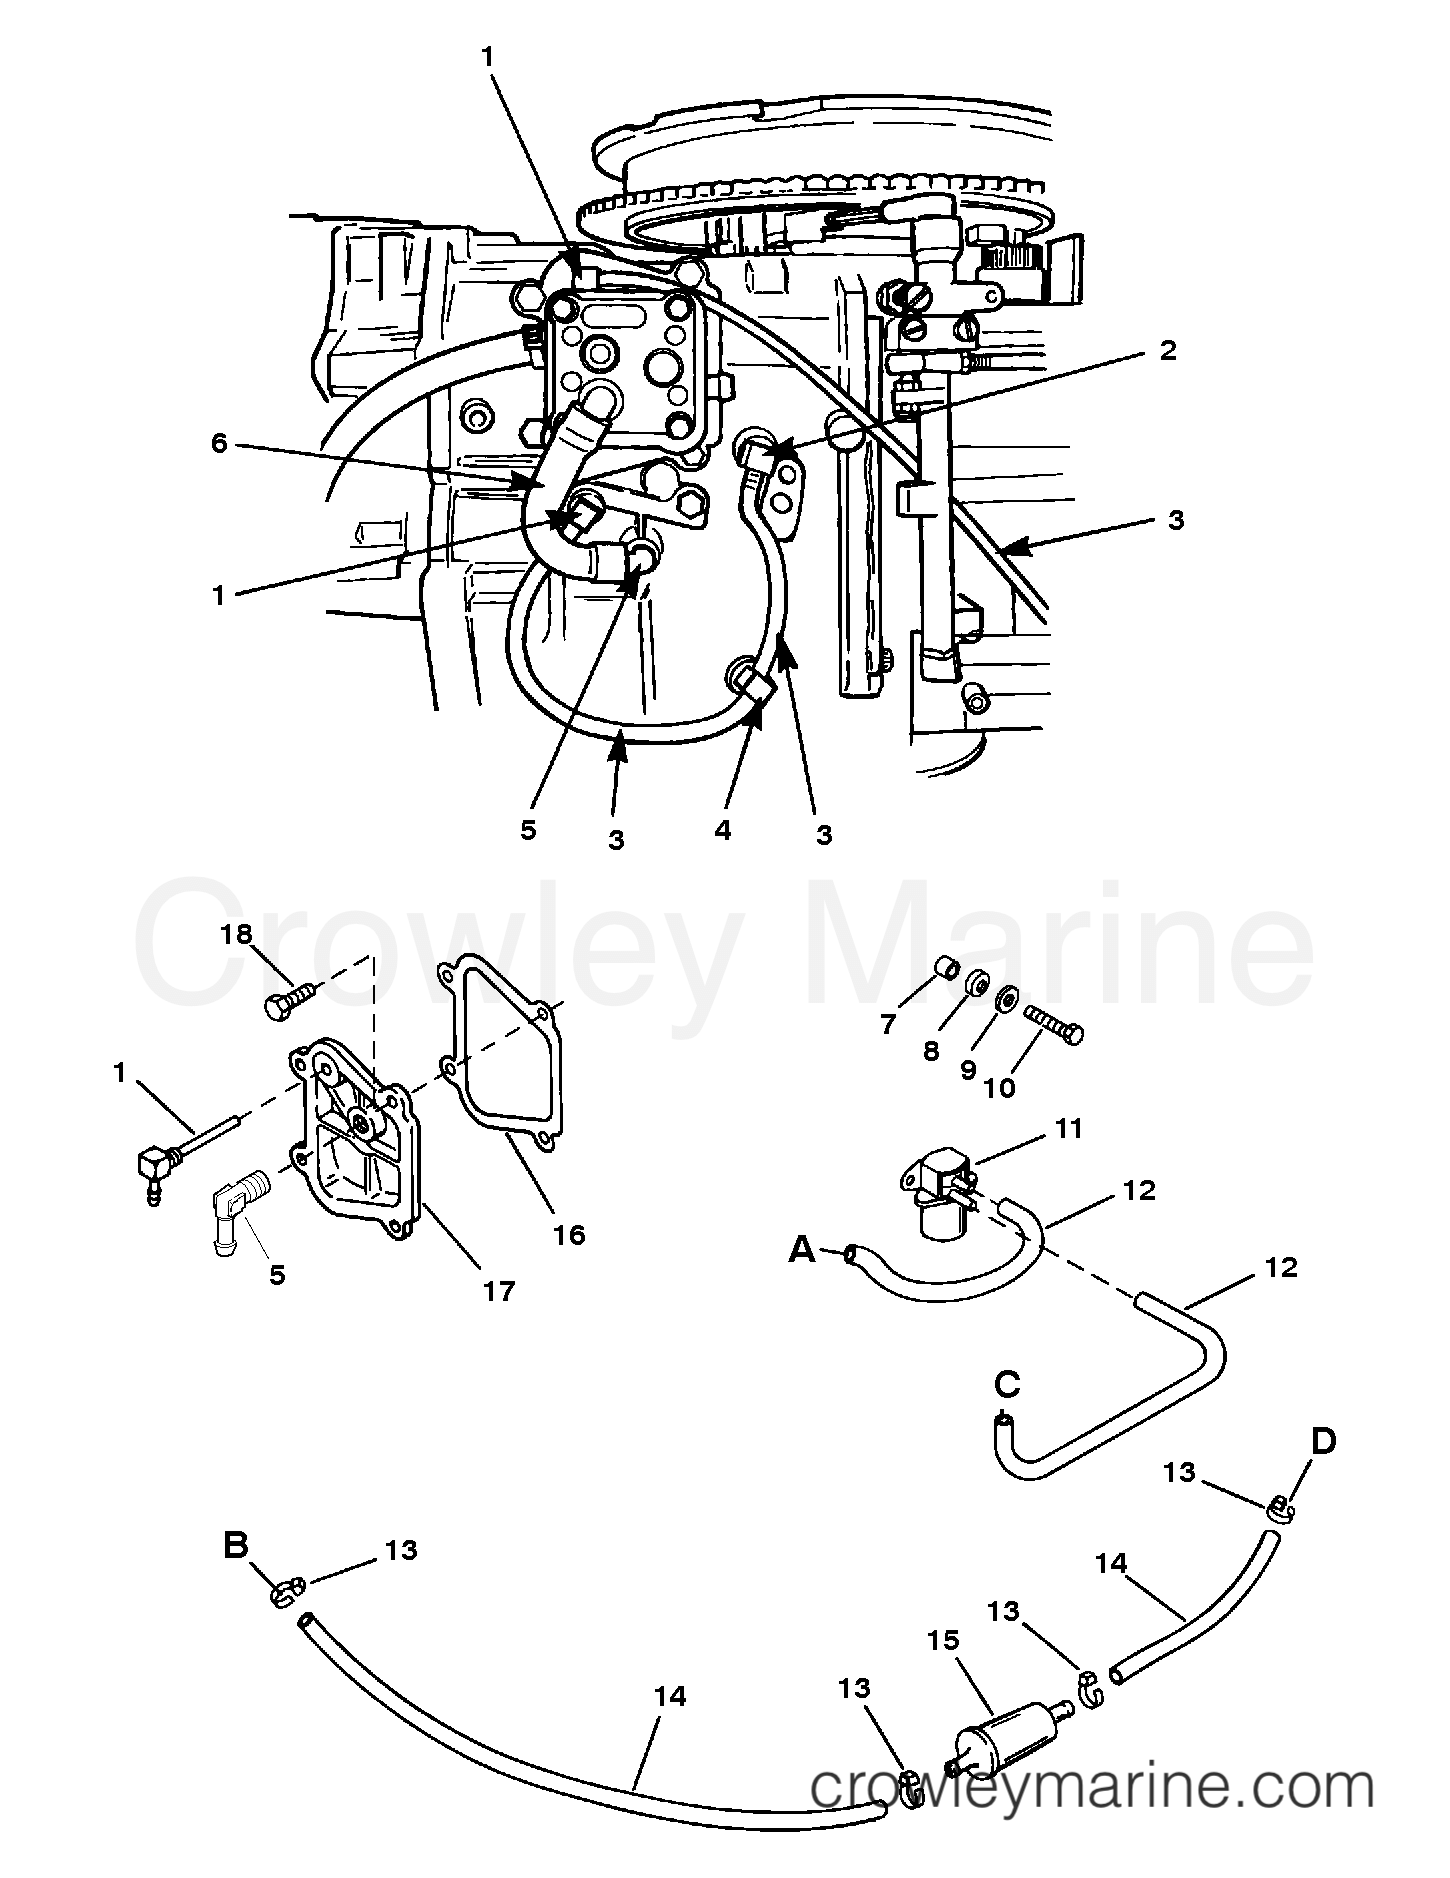 Recirculation And Prime System